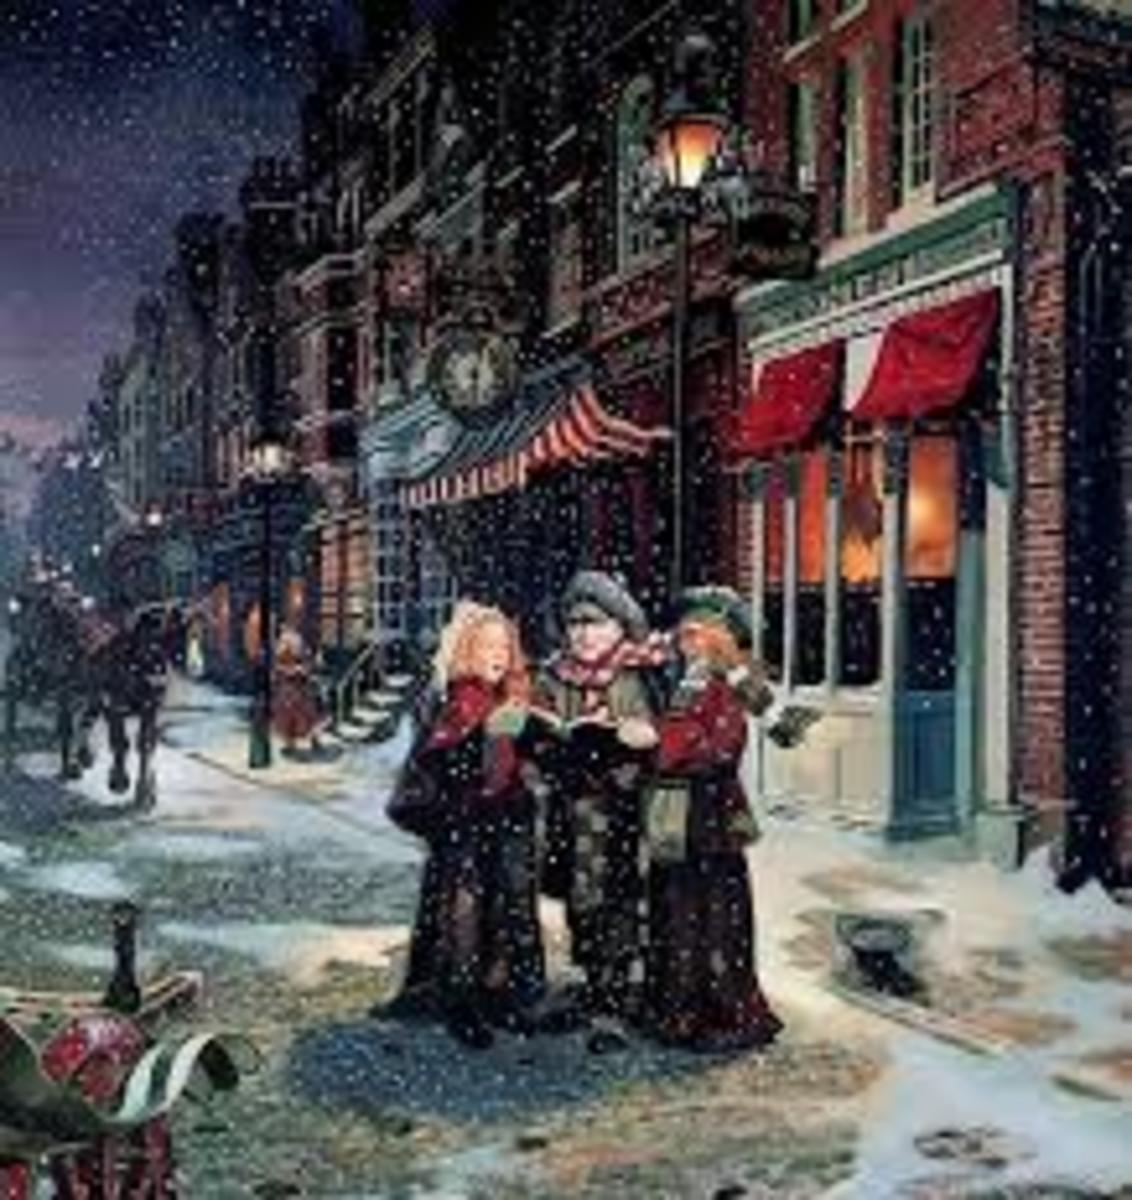 People will sing Christmas Carols out in the streets to help raise money for charities.